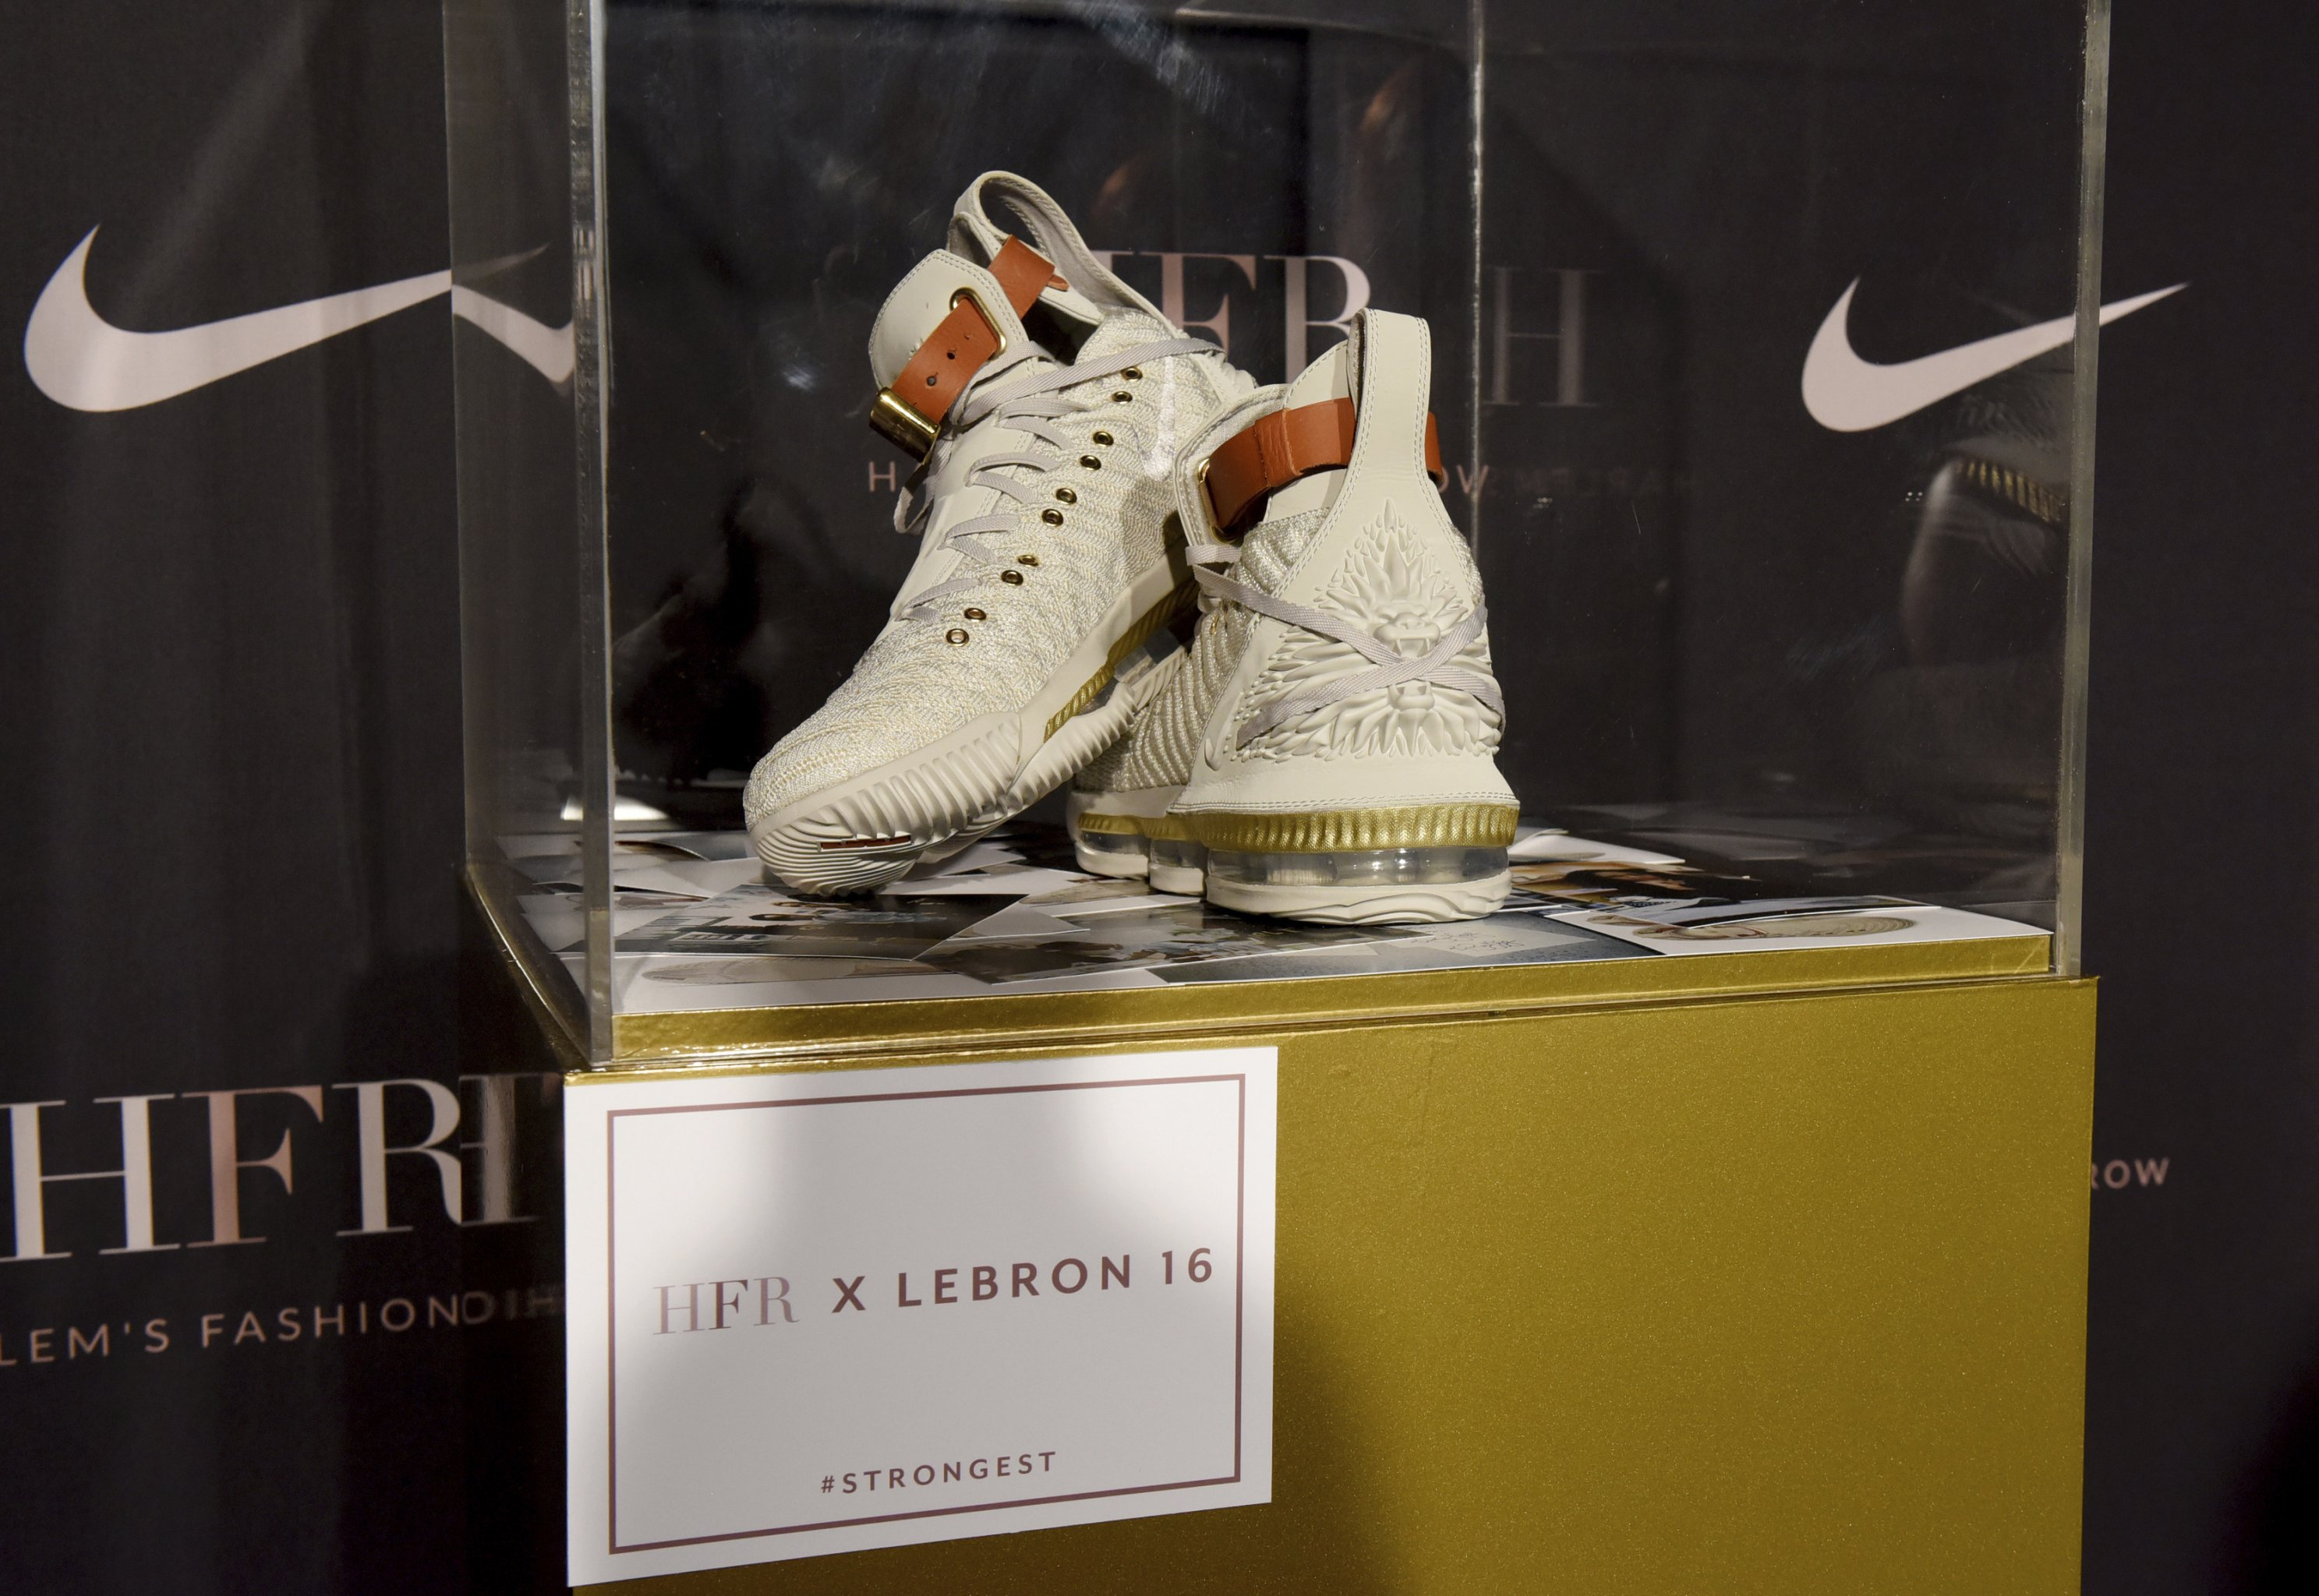 Nike S Lebron Line Finding Its Footing Again With Creativity And